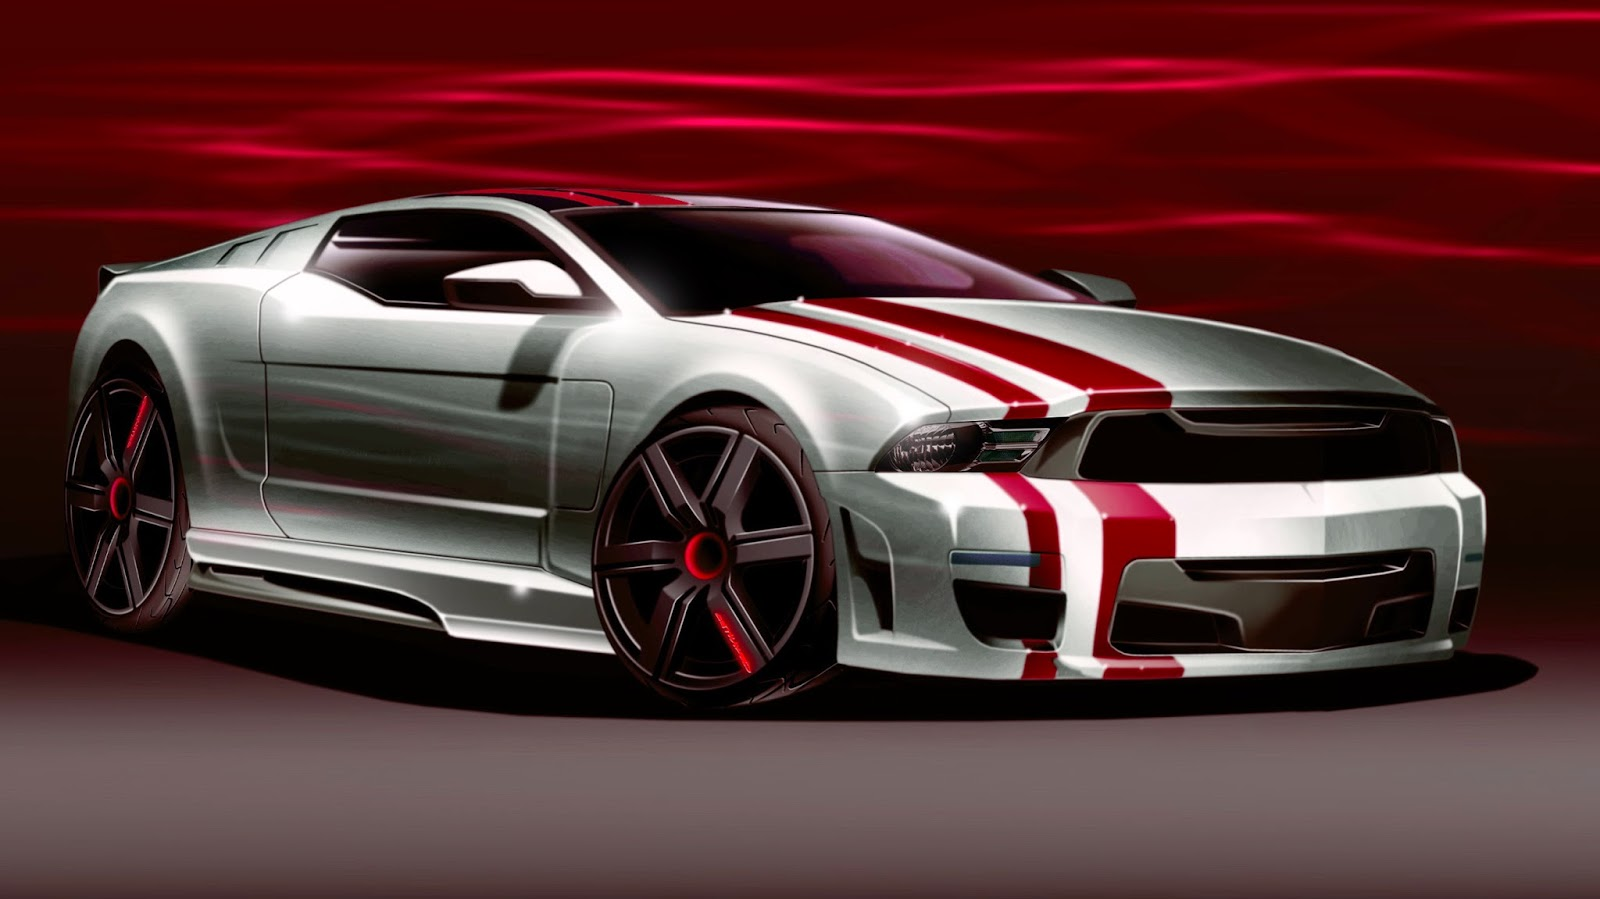 Muscle Cars Wallpapers 1080p Cars Wallpapers Hd Free To Download Now Free Hd Wallpapers